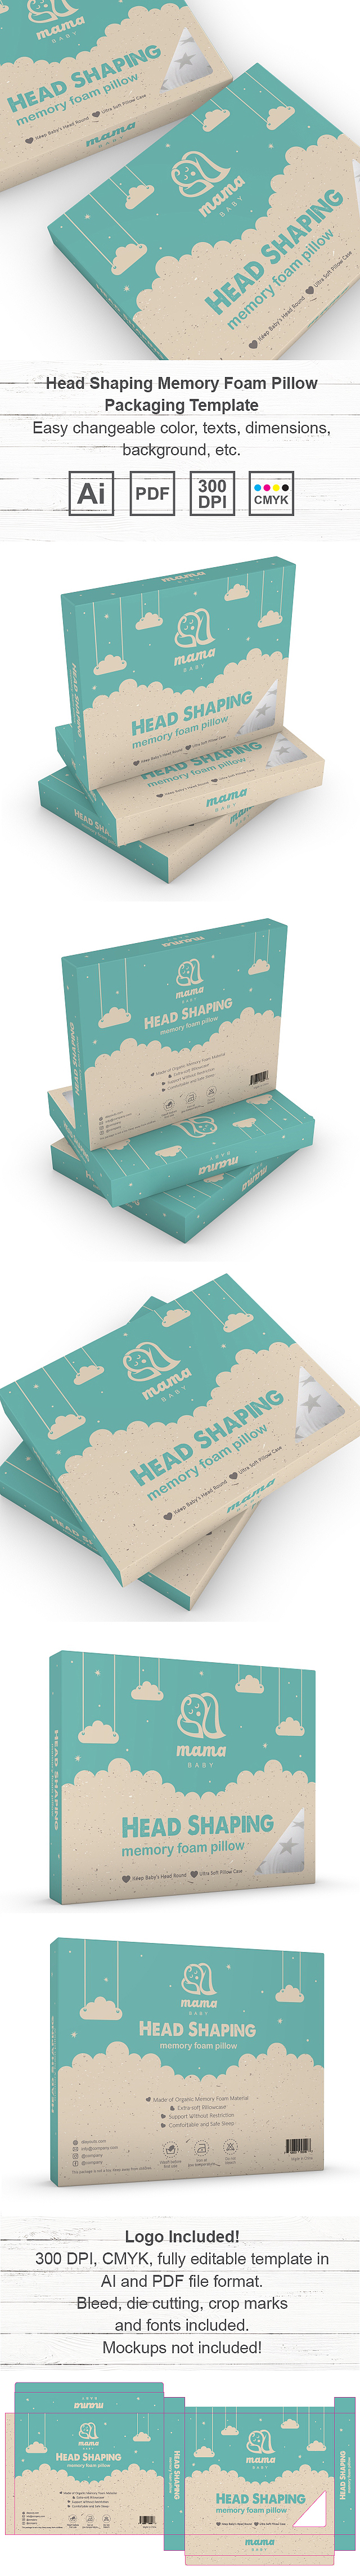 Head Shaping Memory Foam Pillow Packaging Template